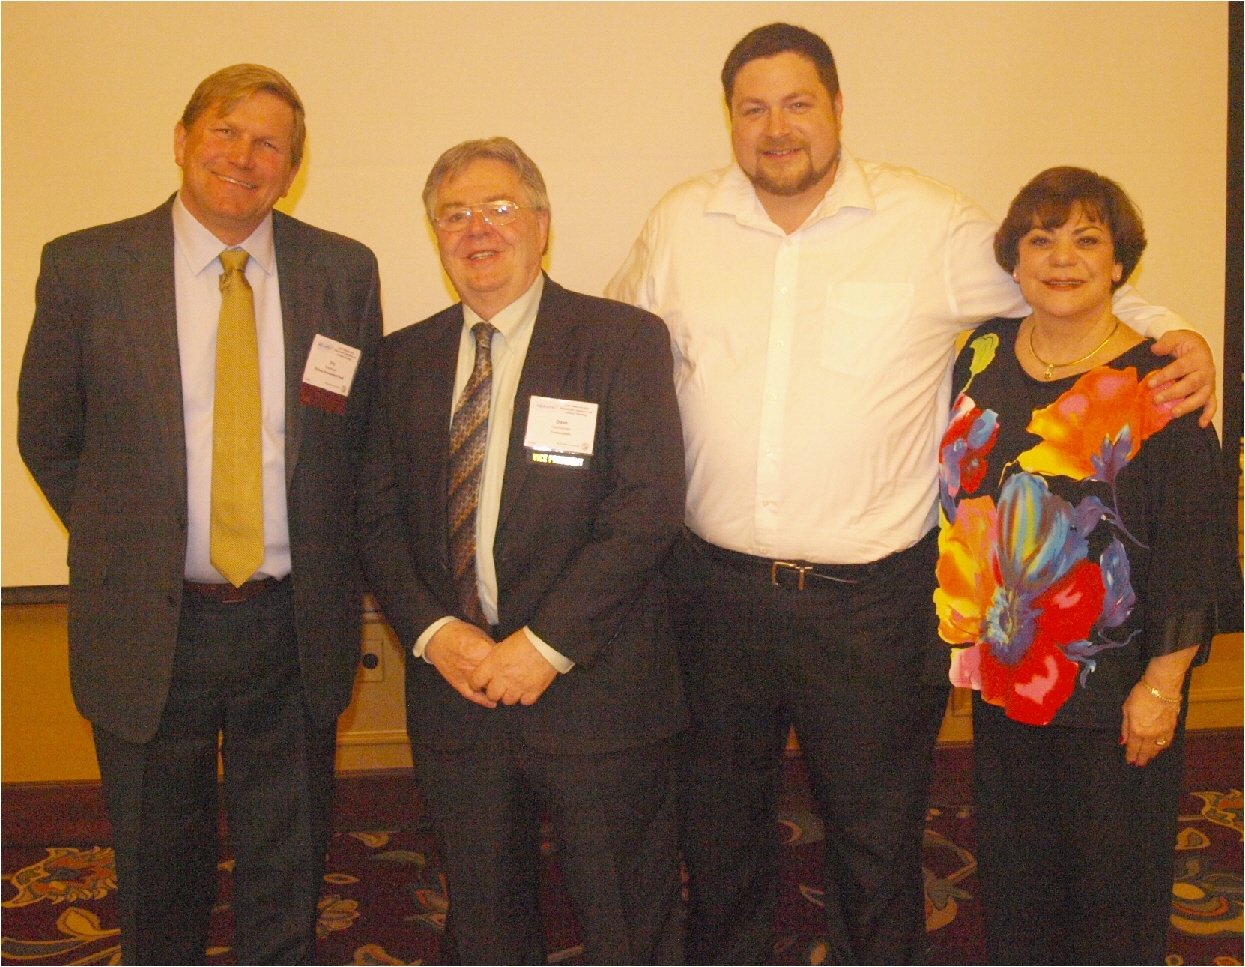 The New England Association of Amusement Parks and Attractions (NEAAPA) installed the following officers at its recent annual meeting (from the left): President Eric Anderson, Quassy Amusement & Waterpark; First Vice President Dave Oberlander, Centerplate; Second Vice President, Chris Nicoli, Canobie Lake Park; Treasurer, Charlene Conway, Carousel Family Fun Centers